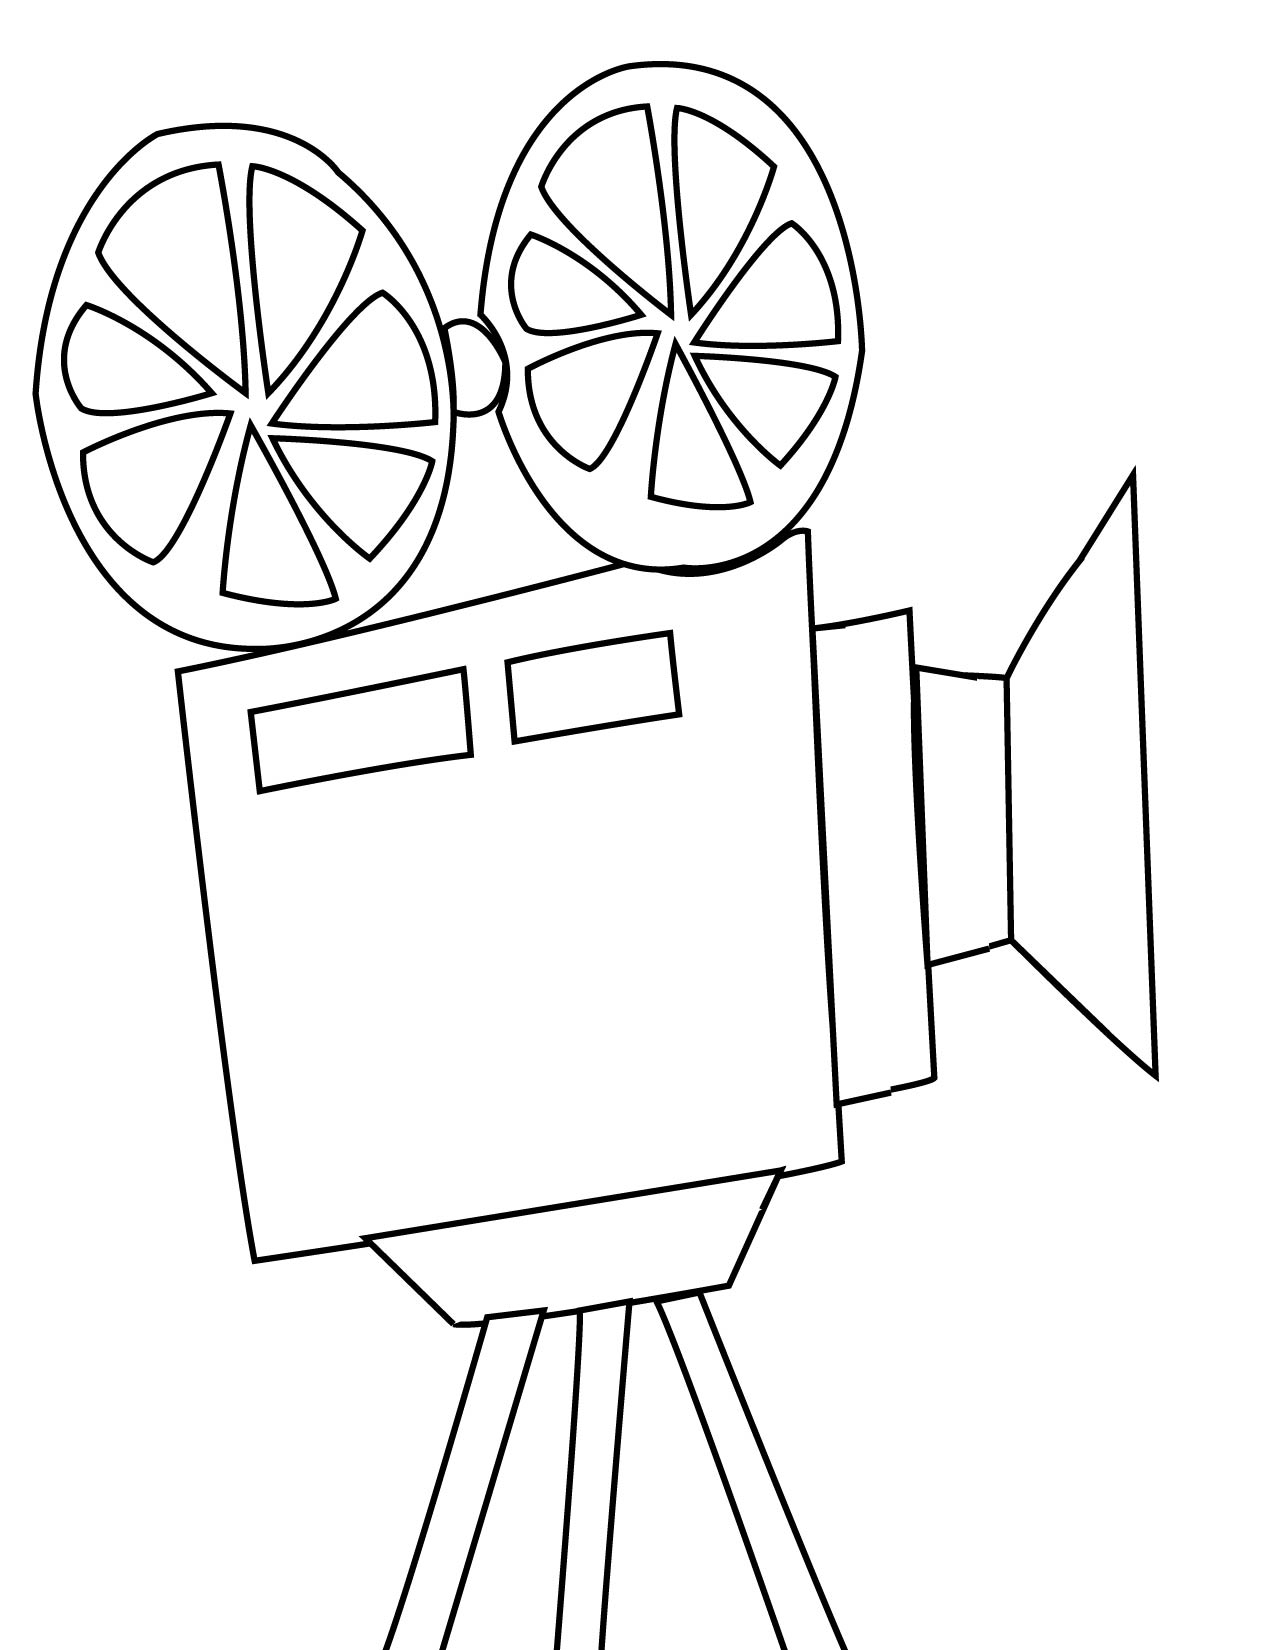 Movie Camera Drawing at GetDrawings.com | Free for personal use ...